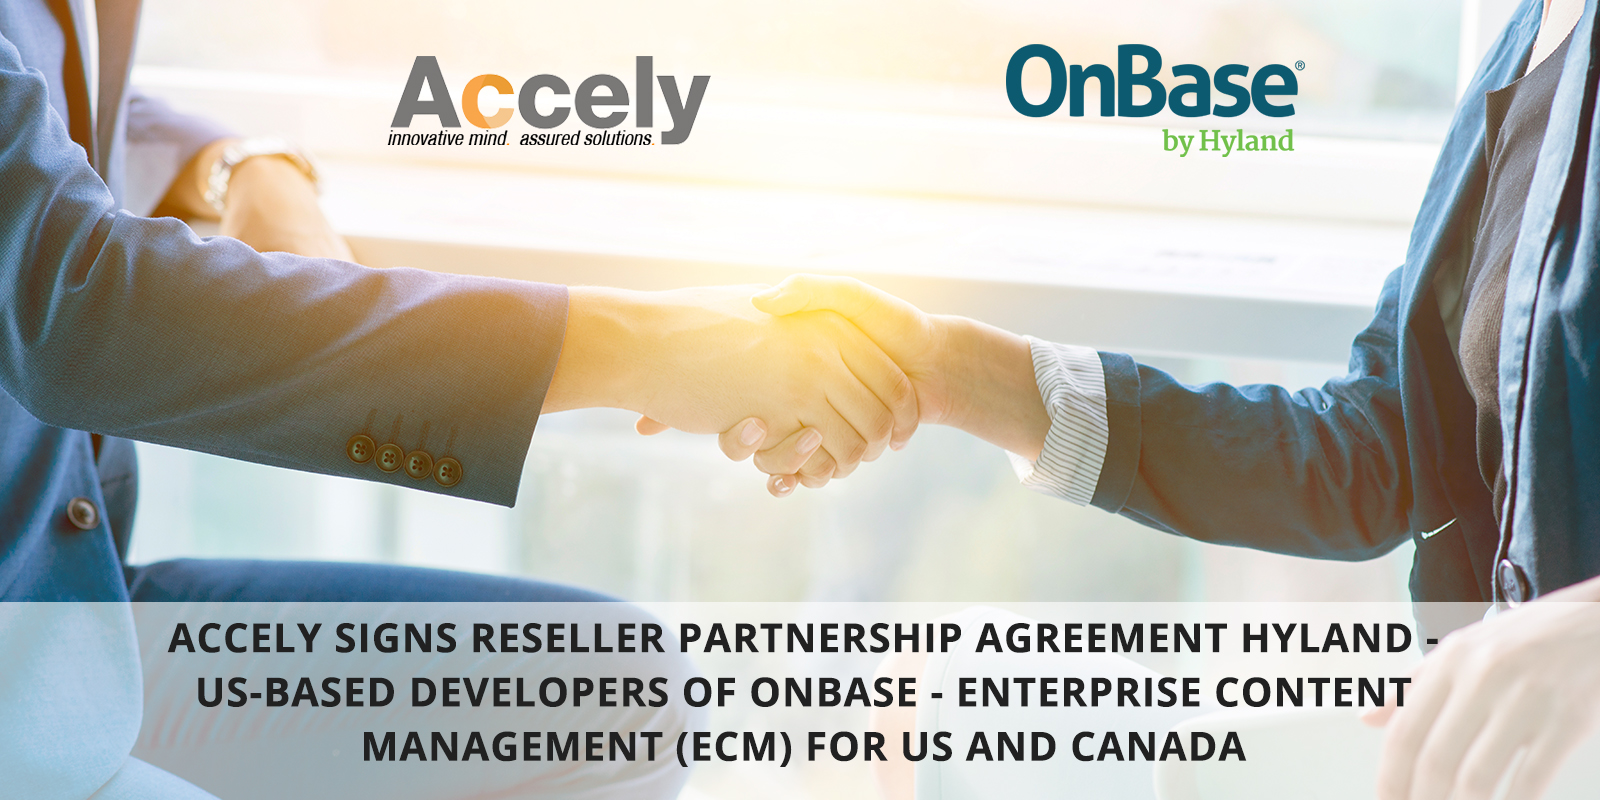 Accely signs Reseller Partnership Agreement Hyland - US-based Developers of OnBase - Enterprise Content Management (ECM) for US and Canada